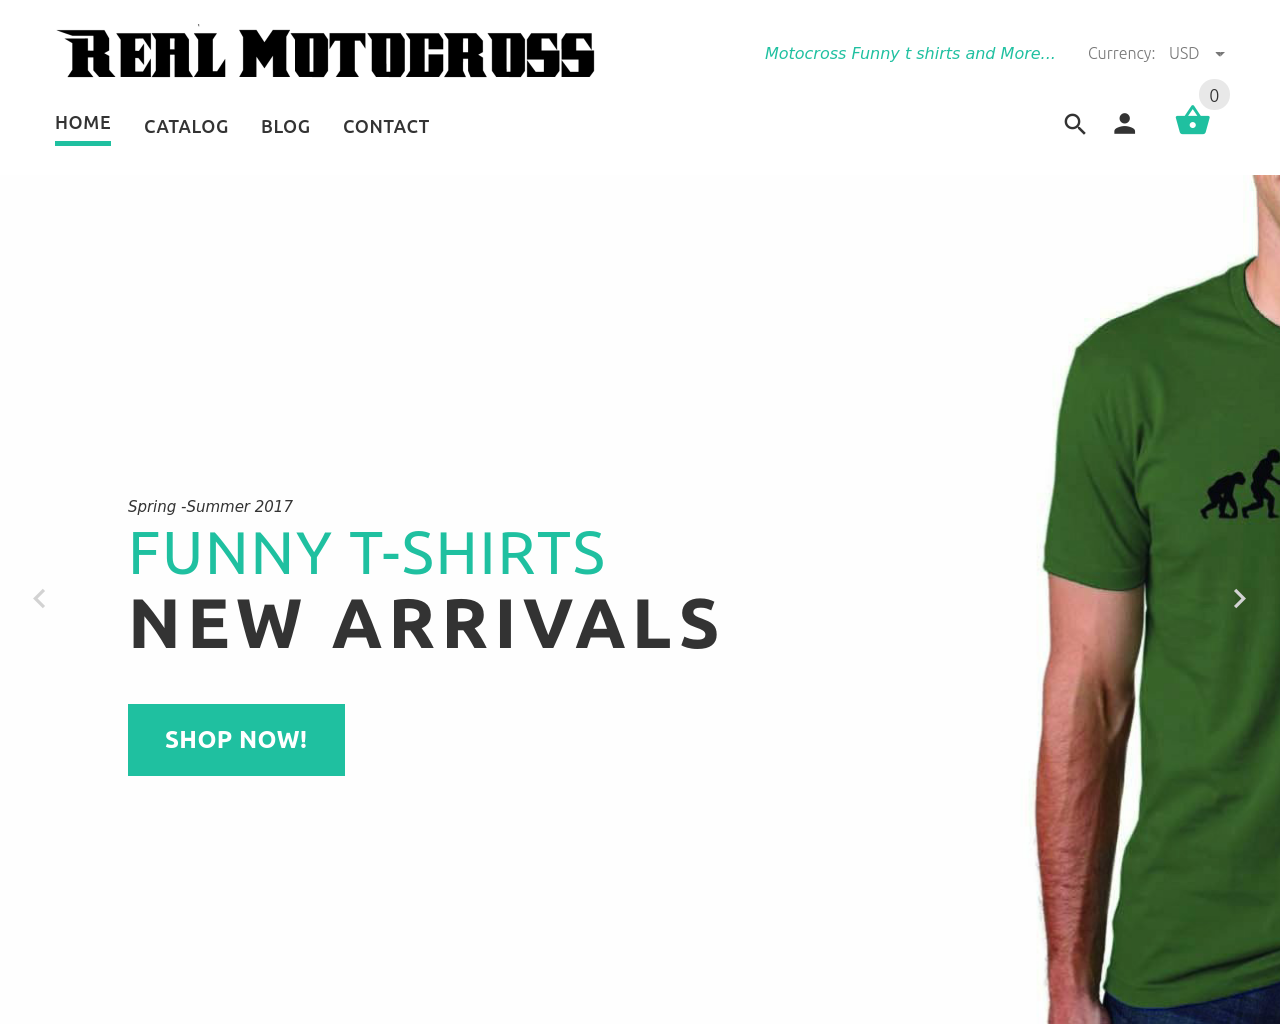 realMotocross-Advertising-Reviews-Pricing